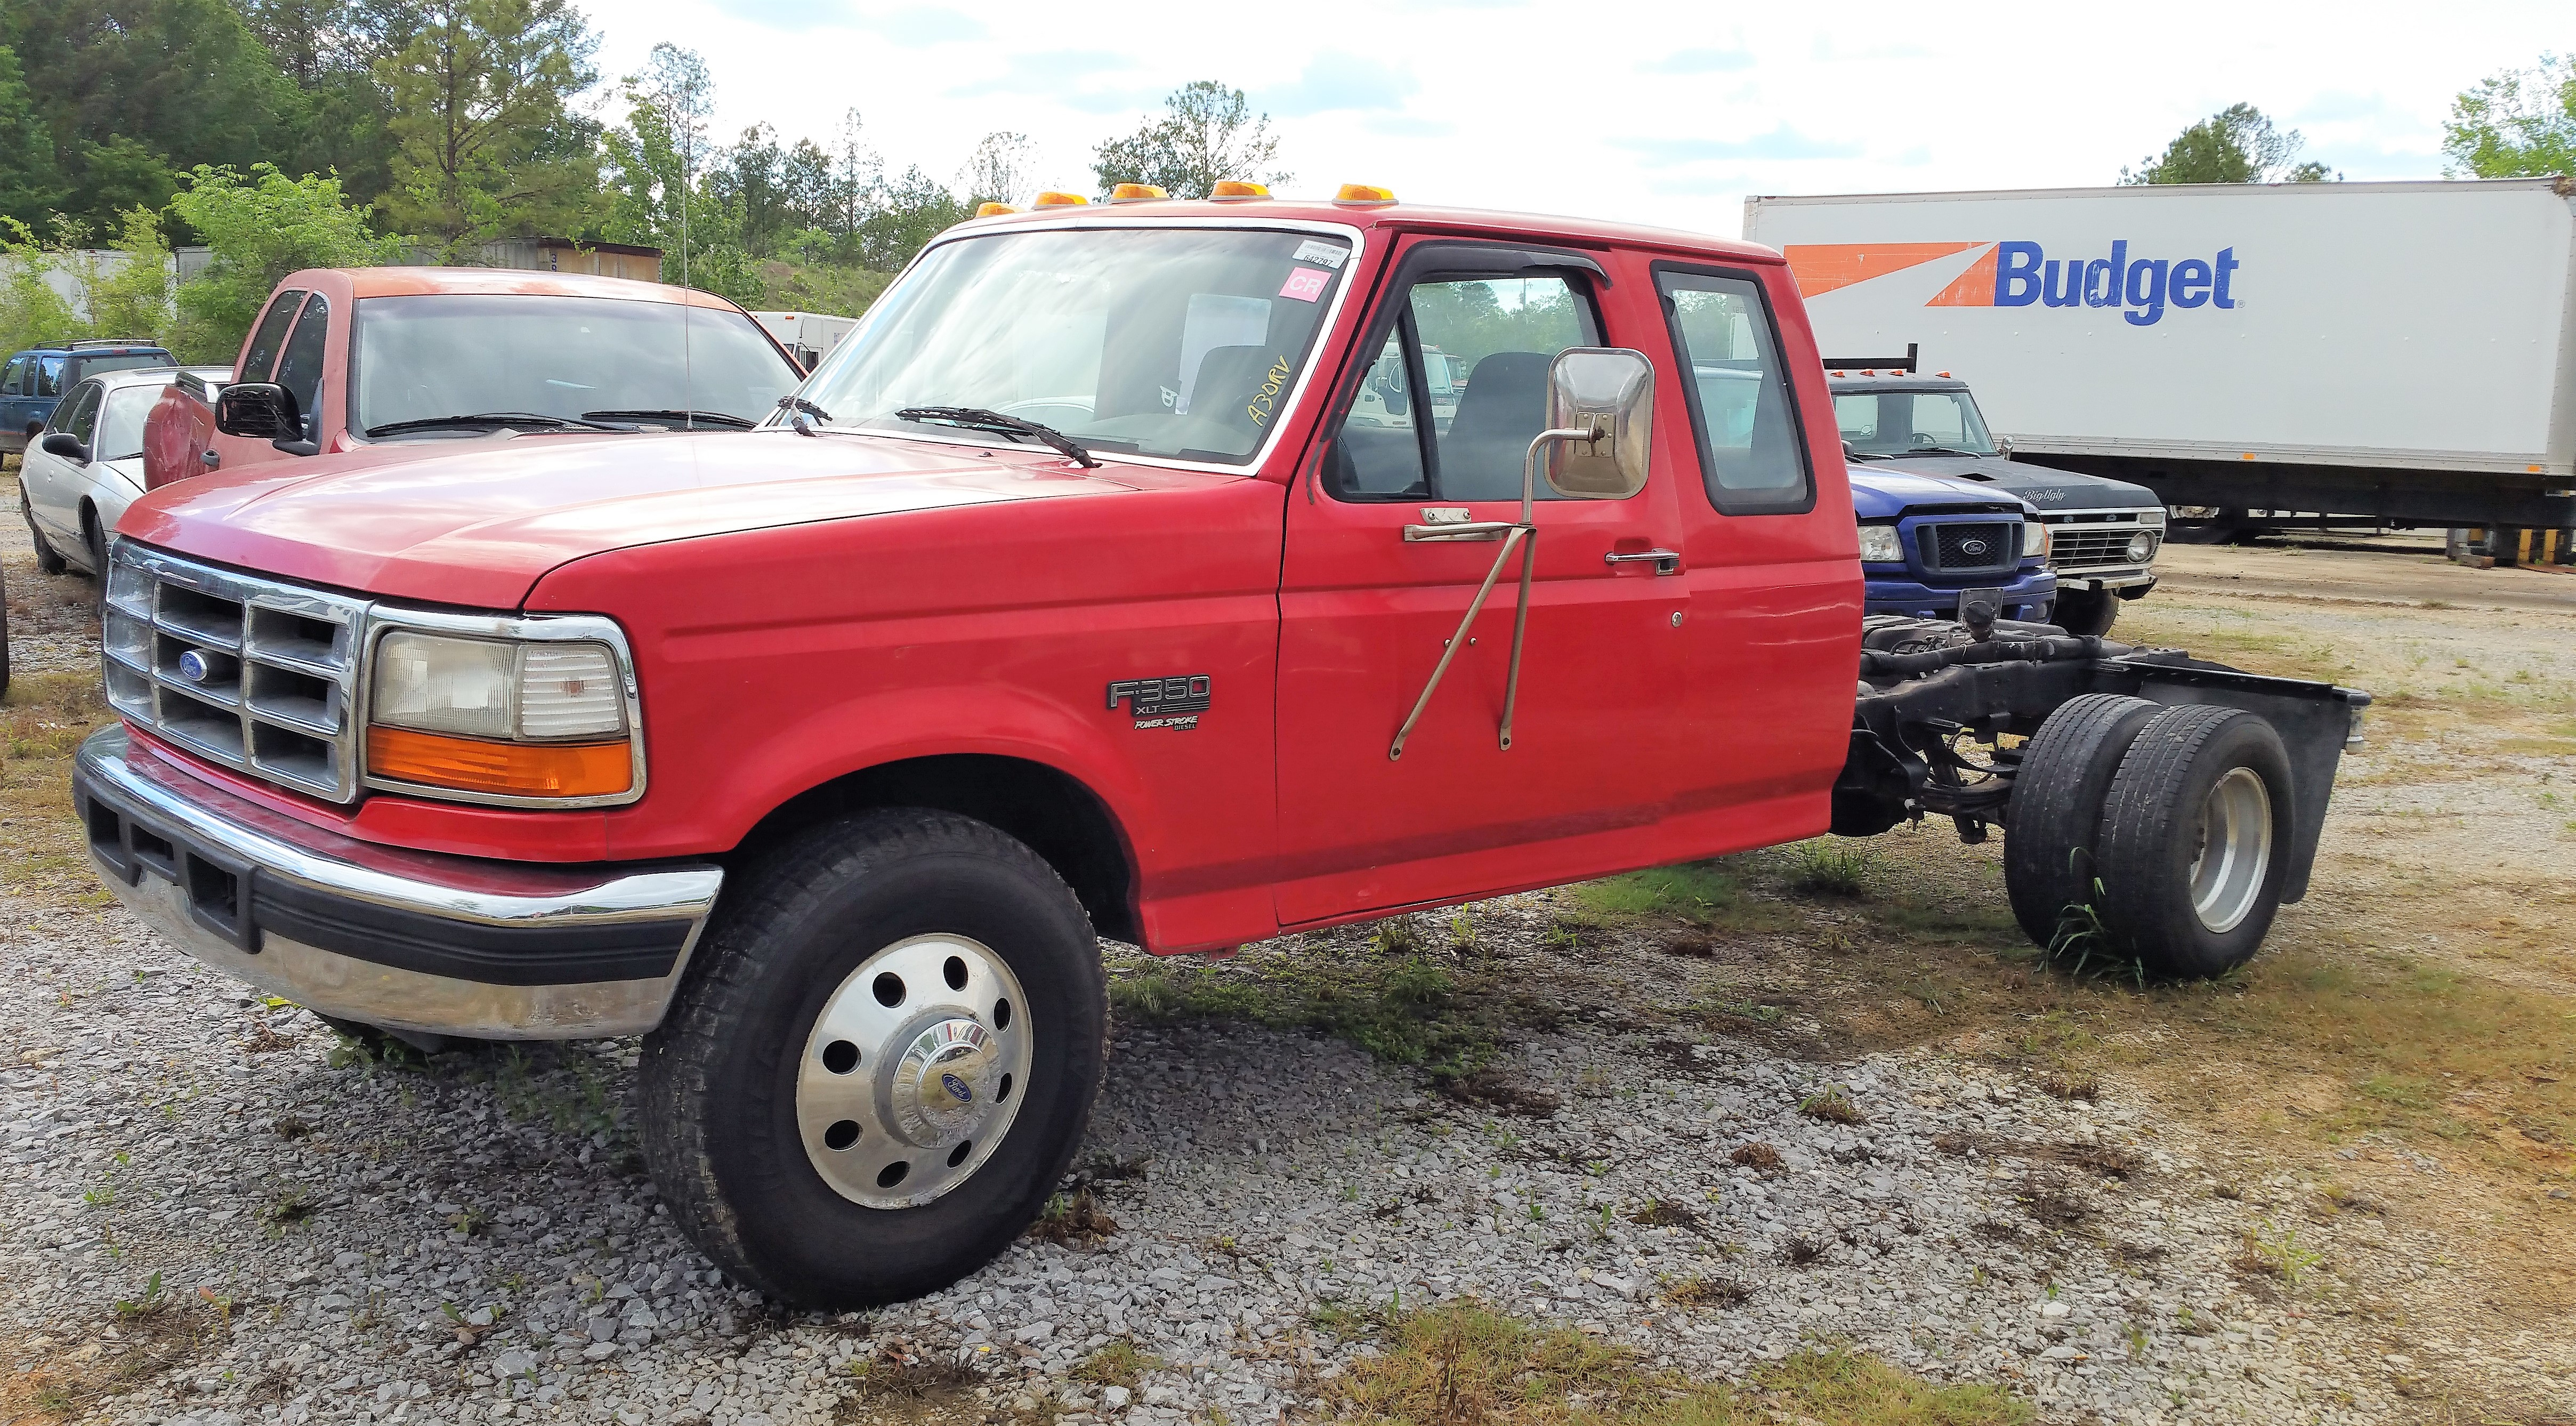 1997 Ford F350 7.3 Diesel Cab & Chassis